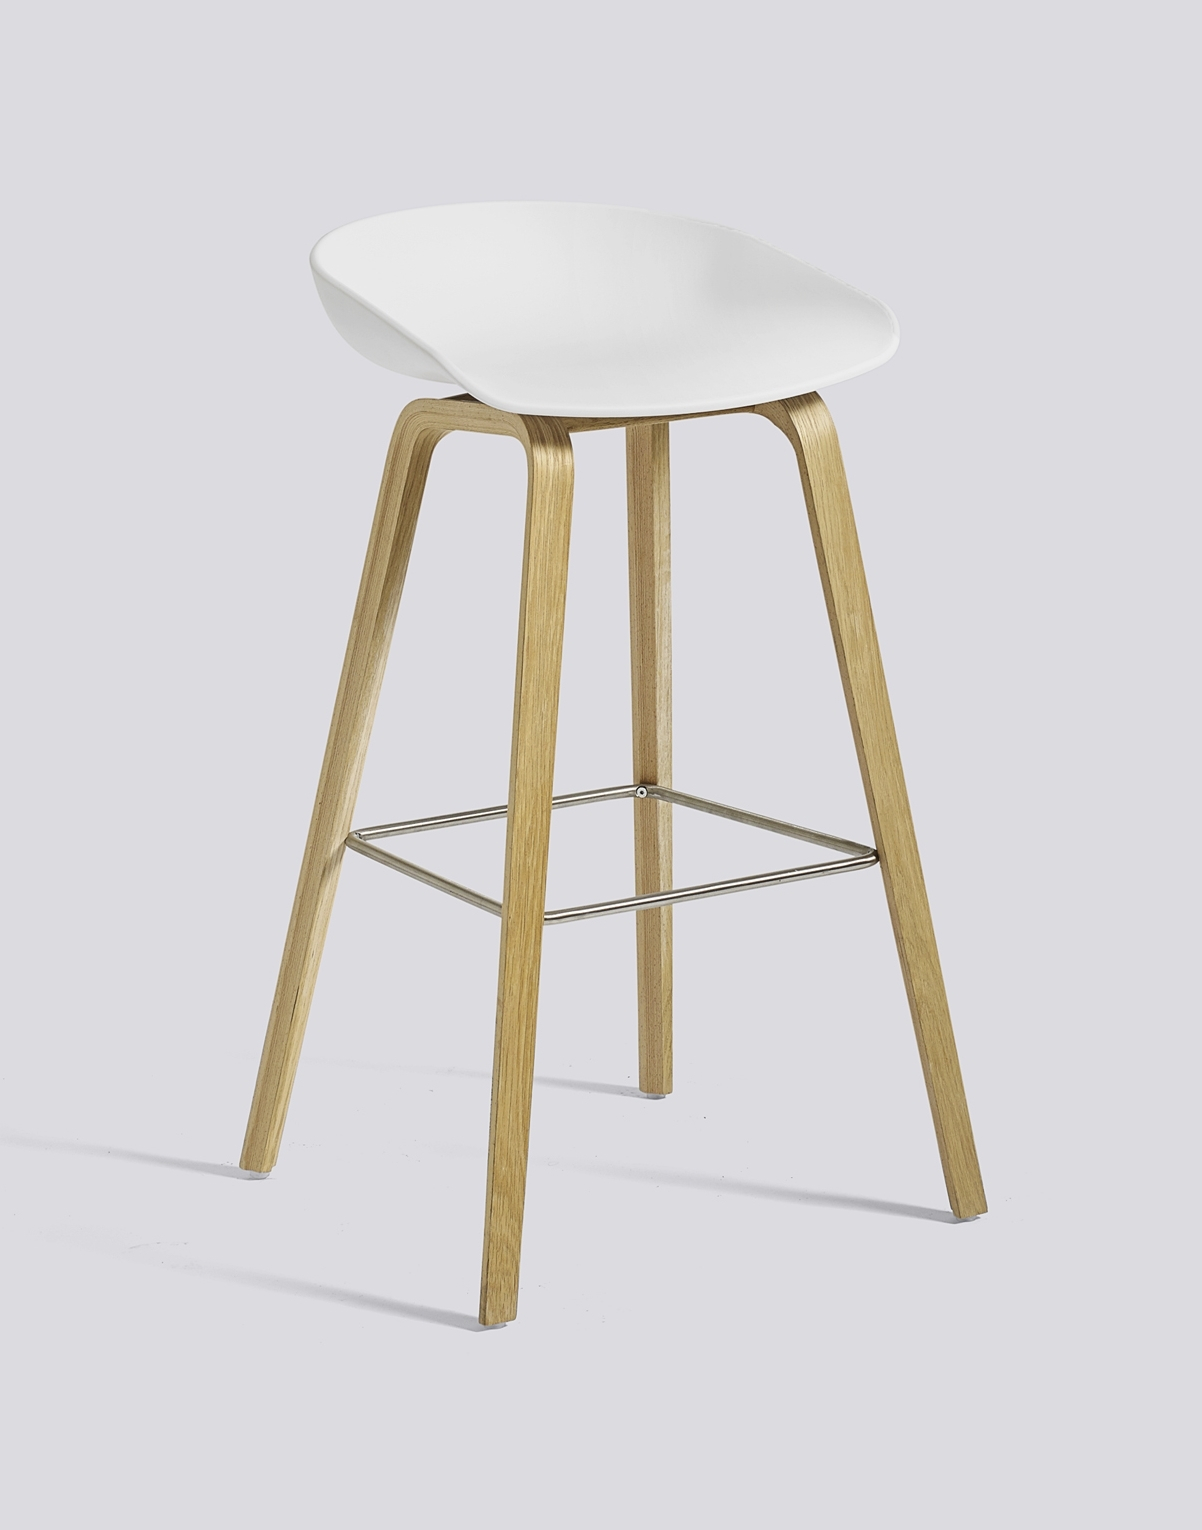 About A Stool AAS32 / AAS 32 Bar Stool High Oak soaped - dusty blue Hay